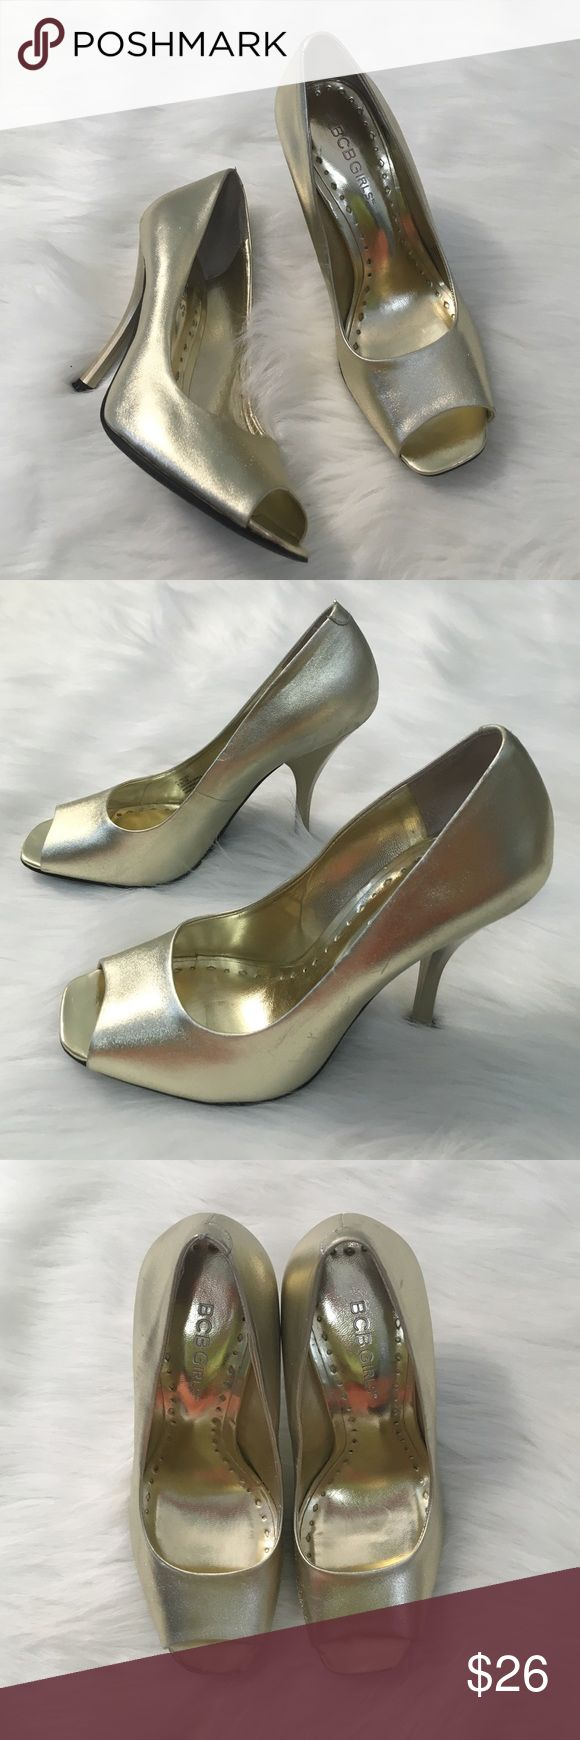 BCBGirls Gold Peep Toe Heels Heels: GUC - BCBGirls / GUC minor wear and minimal scuffs BCBGirls Shoes Heels